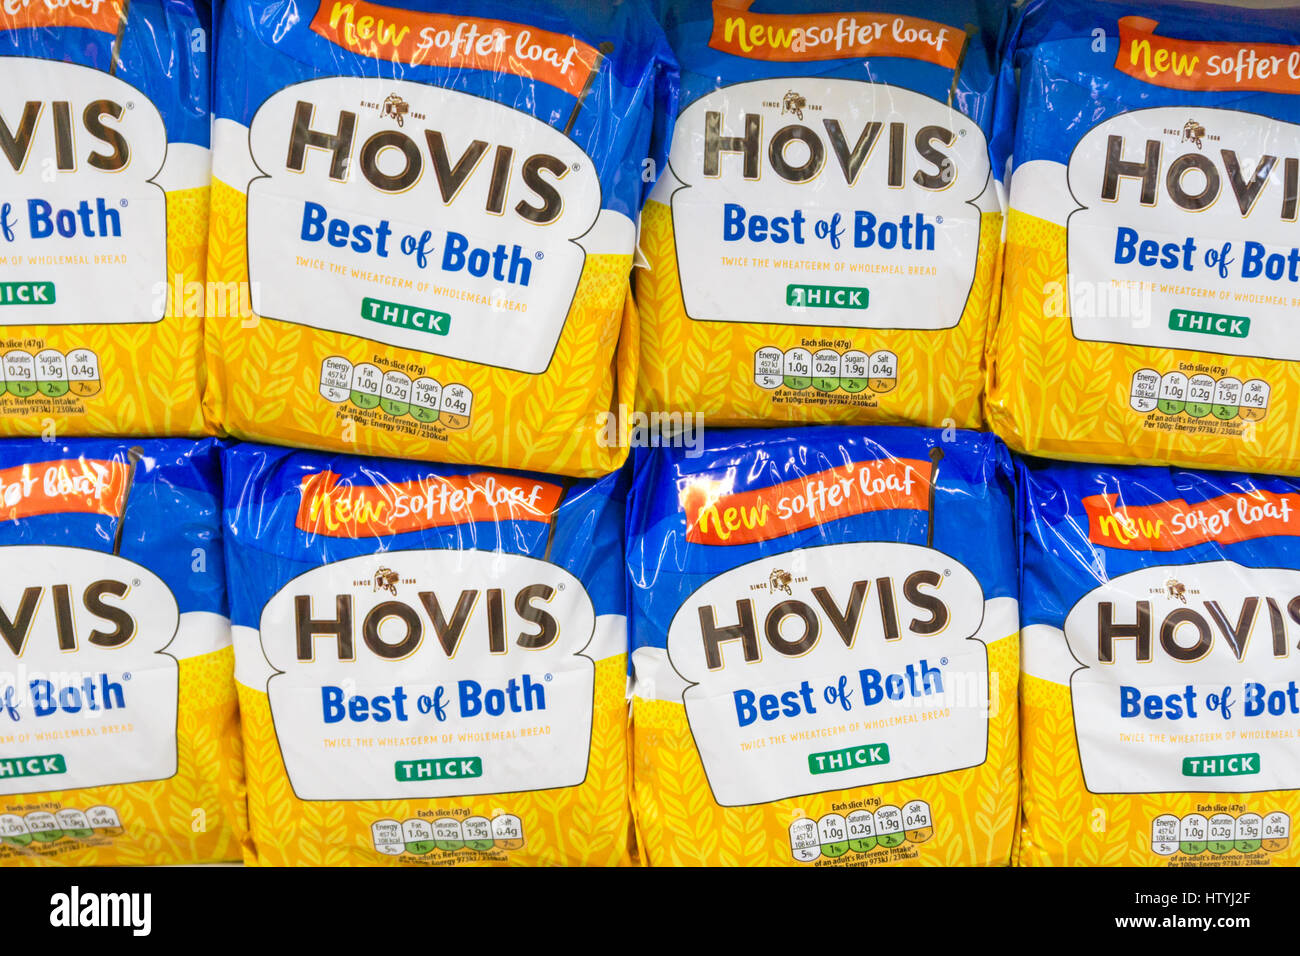 Hovis Best of Both loaves. - Stock Image